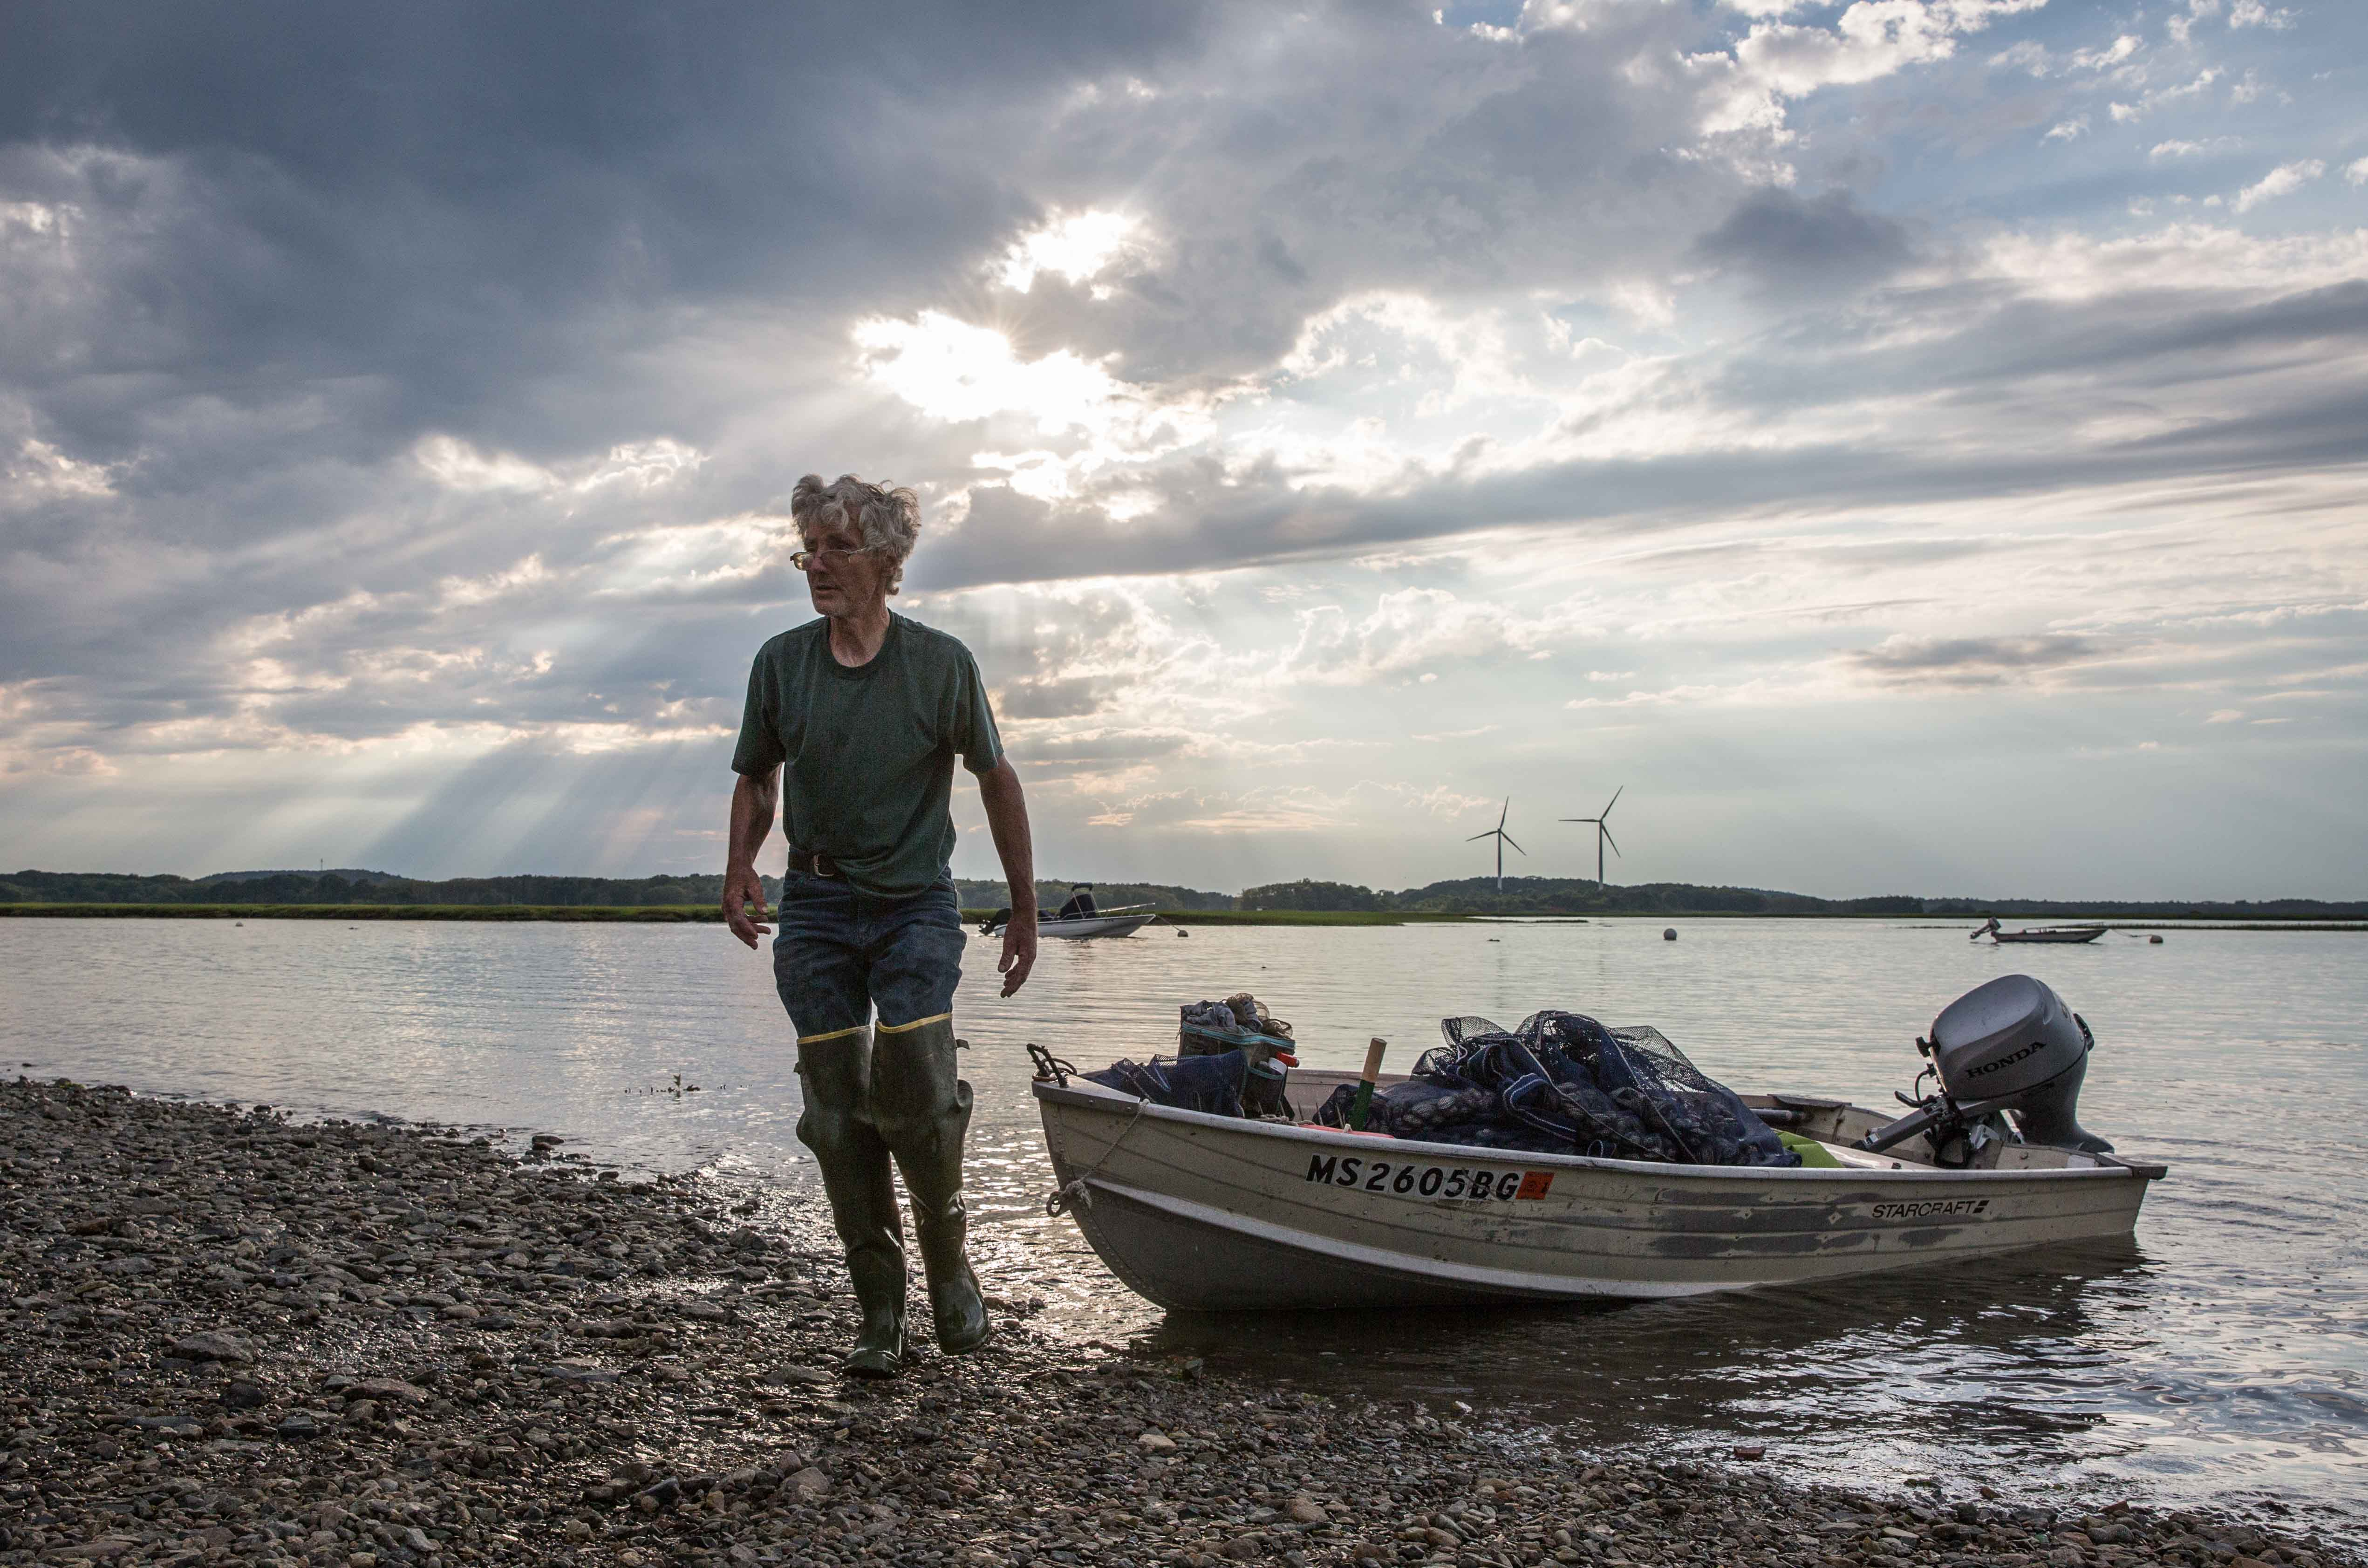 As the ocean reclaims the creeks and mud on a summer evening, clammer Russell Fowler, Jr. returns to shore with his haul. He says the clam flats in the Great Marsh are the best office he's ever worked in. In Ipswich, a commercial clamming permit costs $450, which a good digger can reportedly earn back in a day. (Photo by Coco McCabe/GroundTruth)